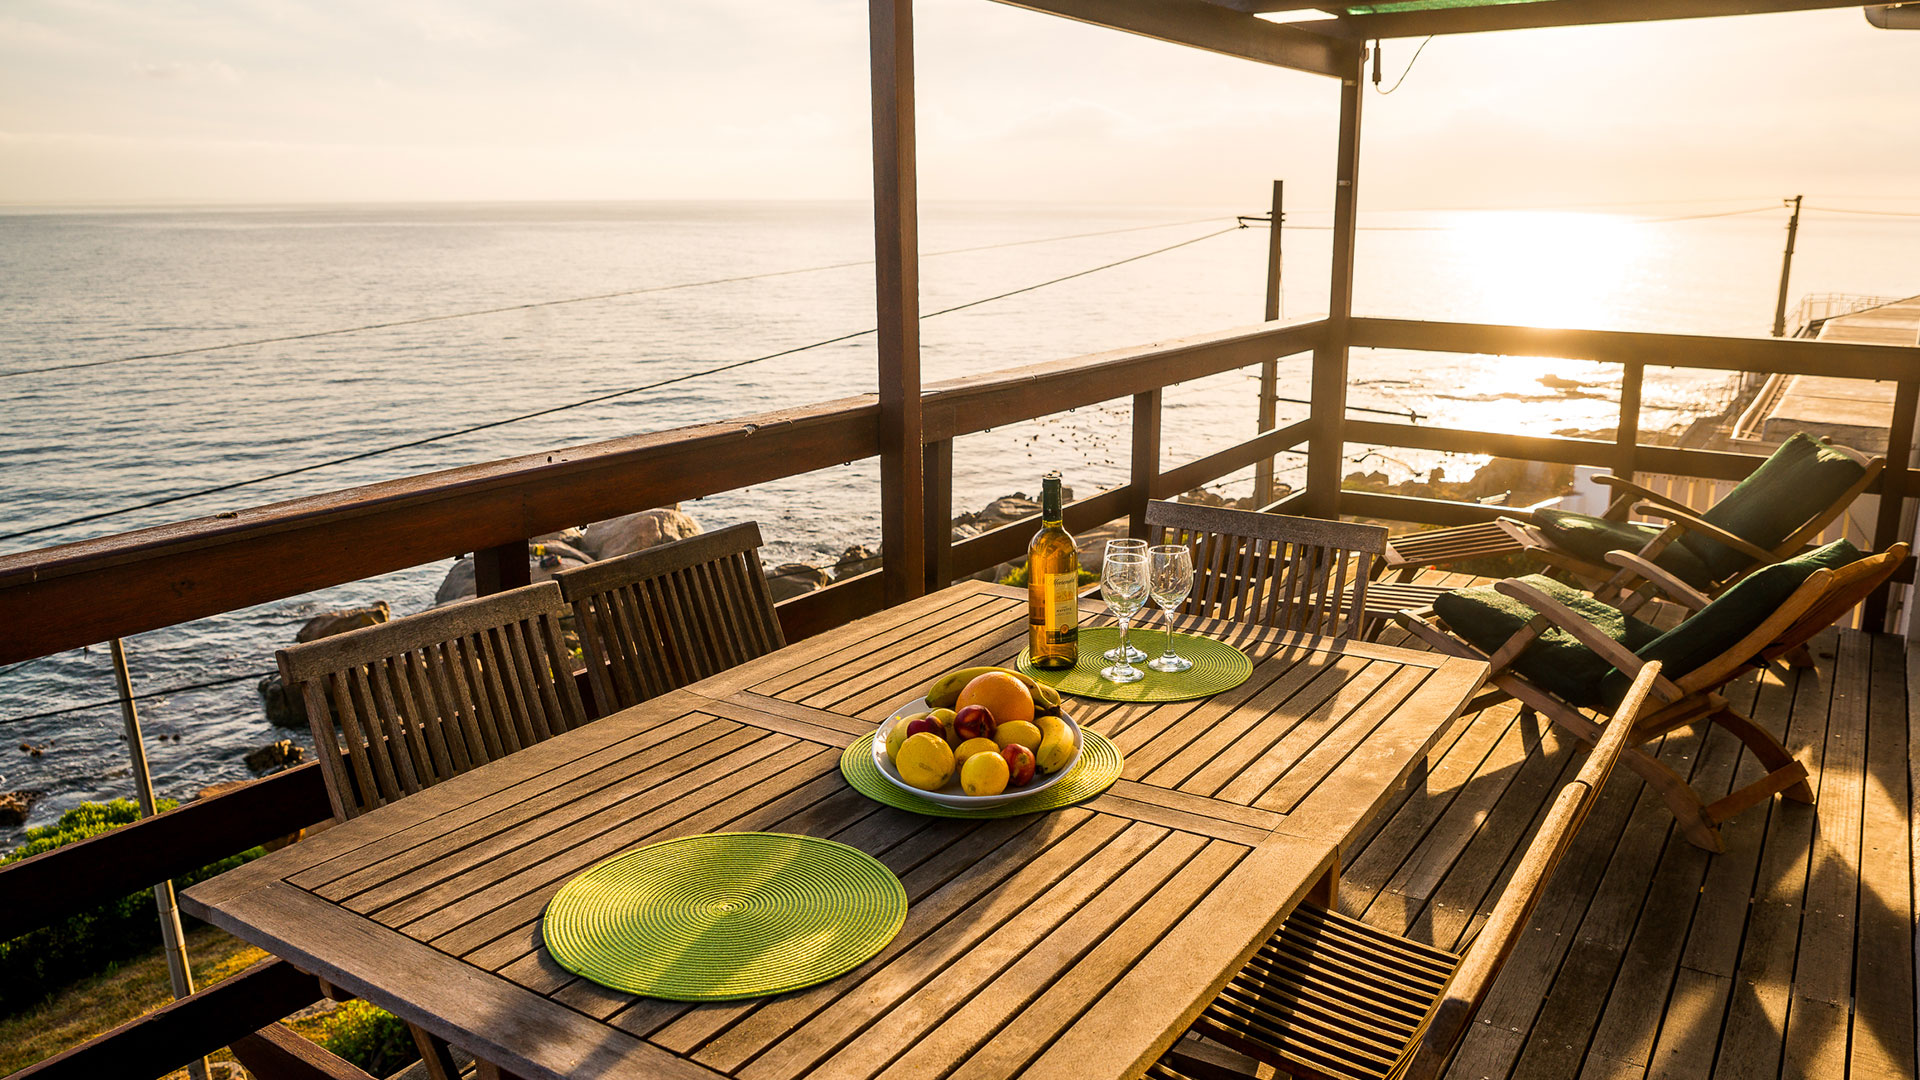 The Upper Deck - Self Catering Accommodation In Sunny Cove